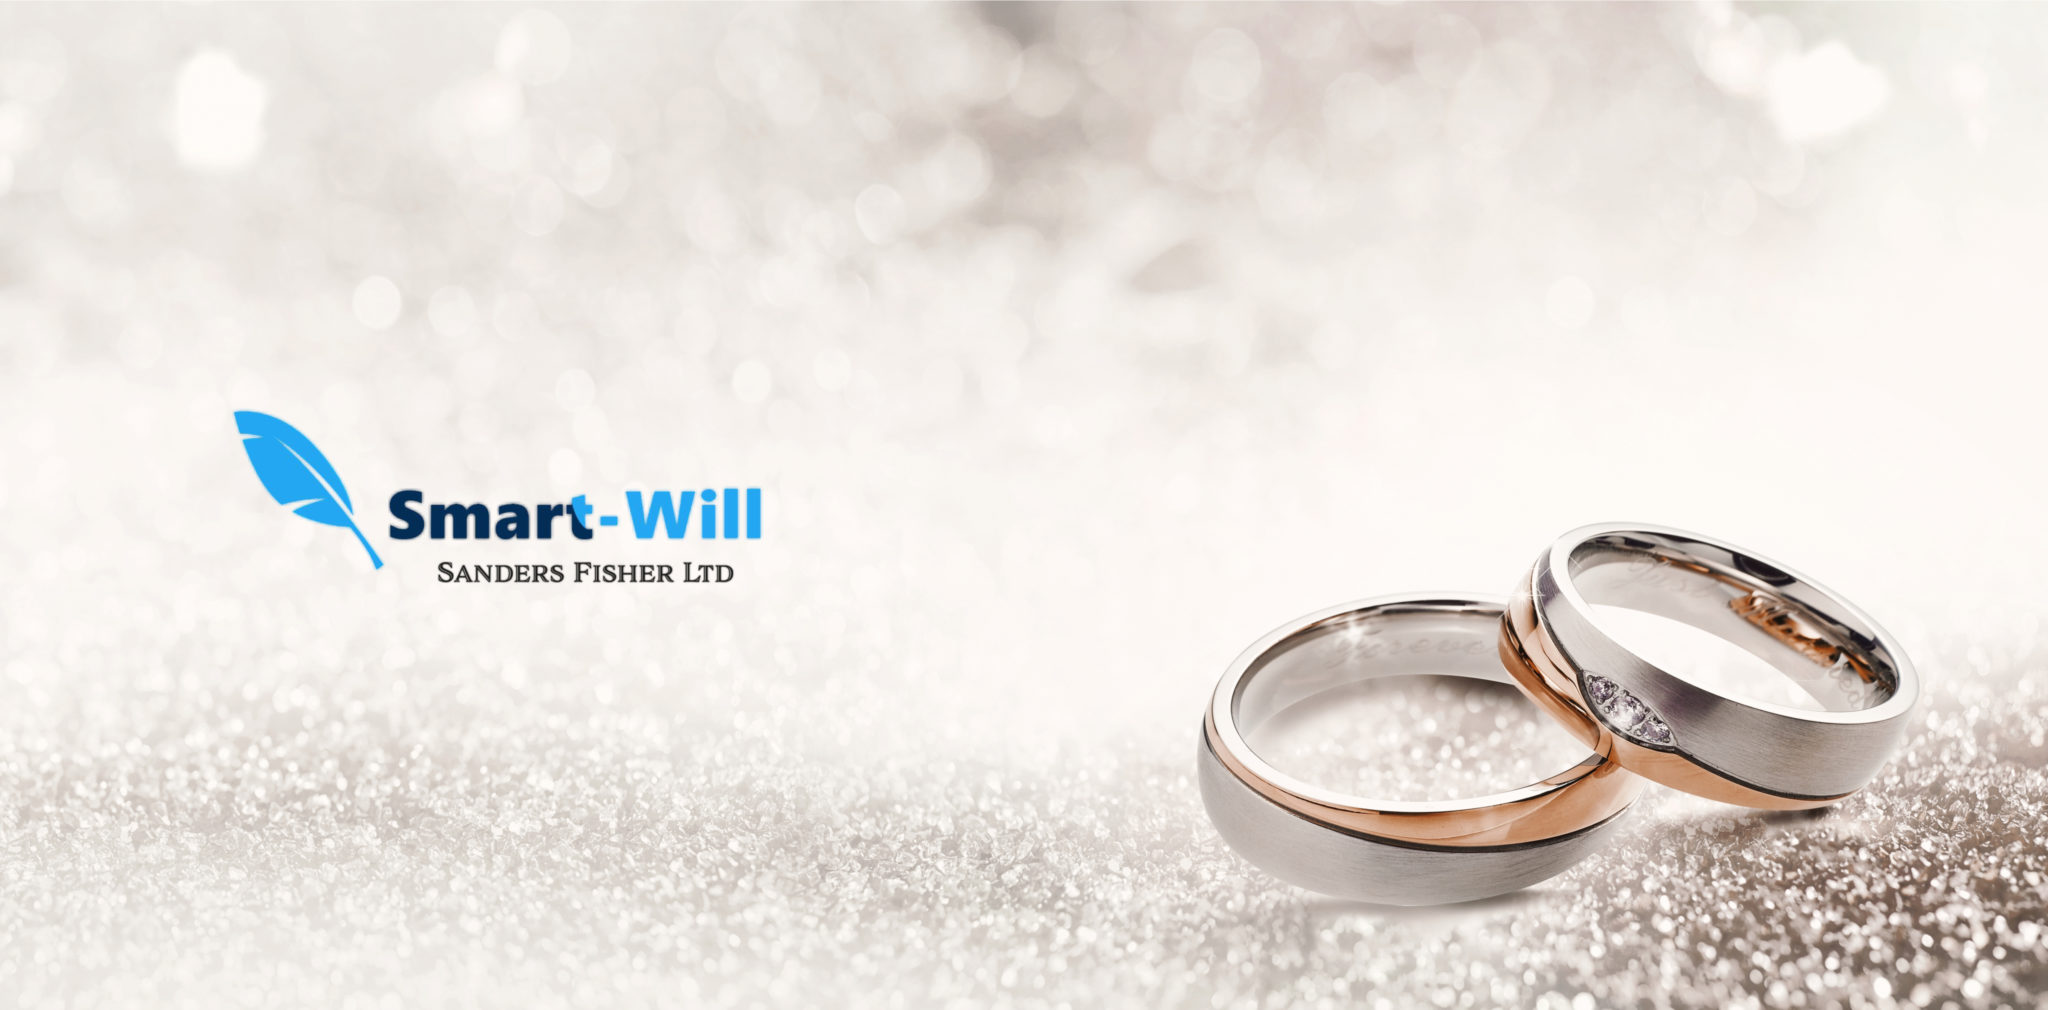 Do I still need a Will if I am married?